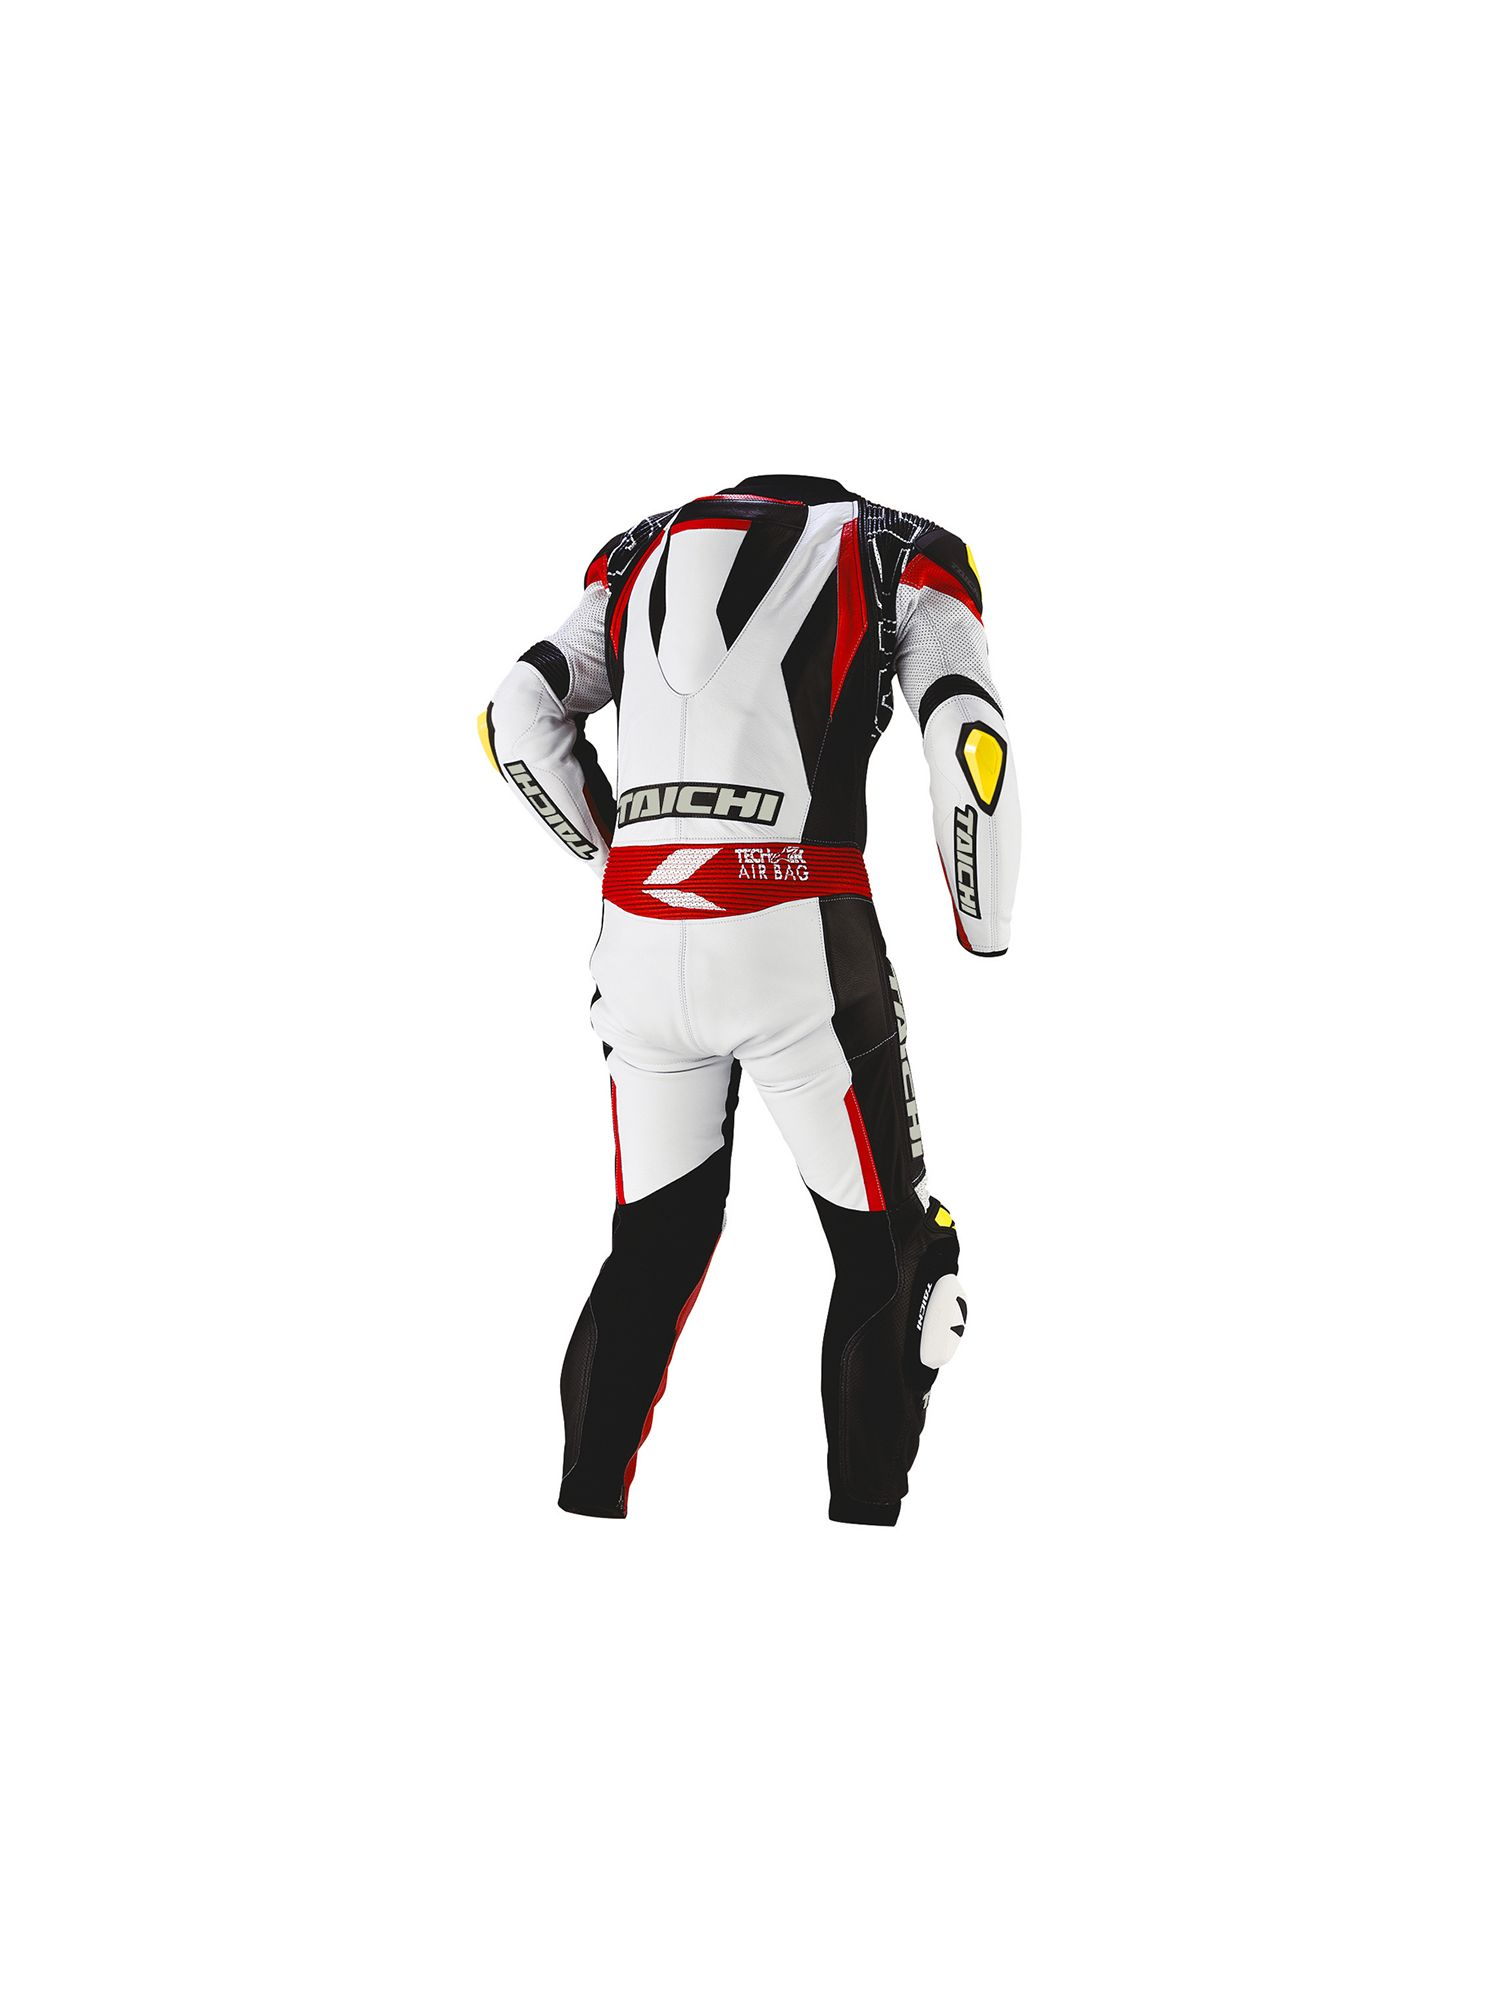 NXL107 | GP-EVO. R107 RACING SUIT[TECH-AIR対応][受注生産]